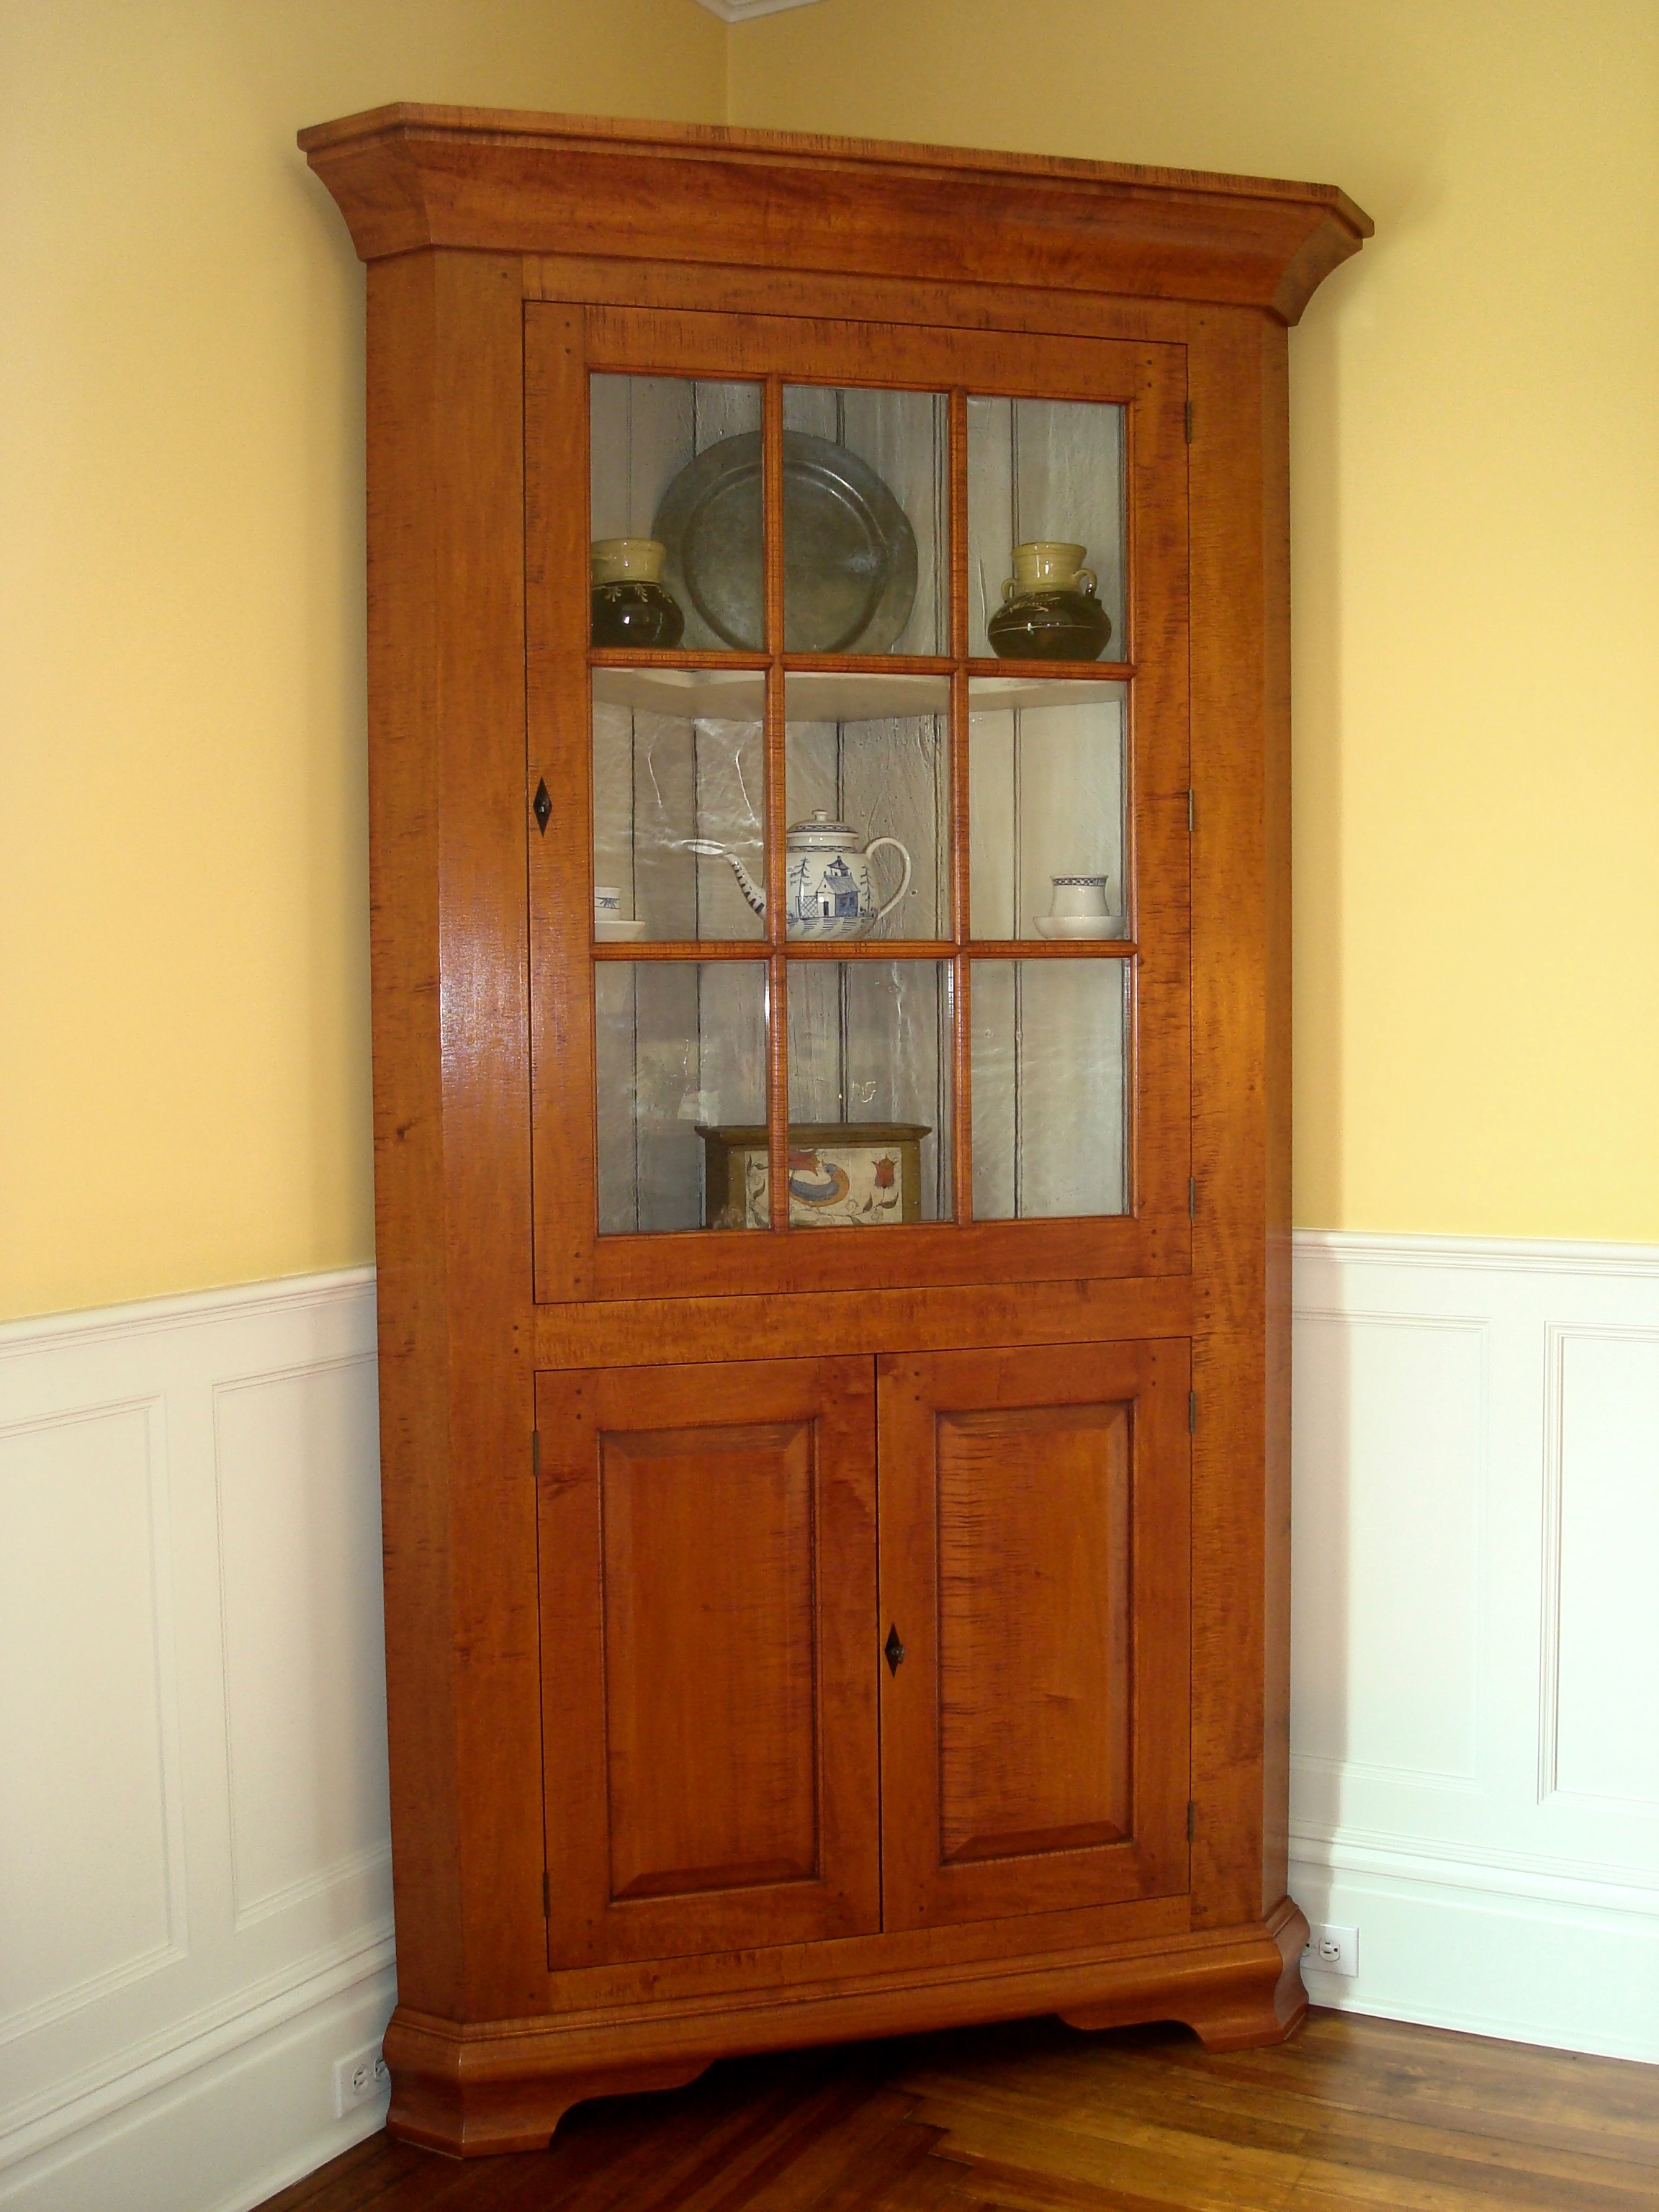 Standing curly maple cupboard with upper 9 lite glass door and 2 paneled lower doors